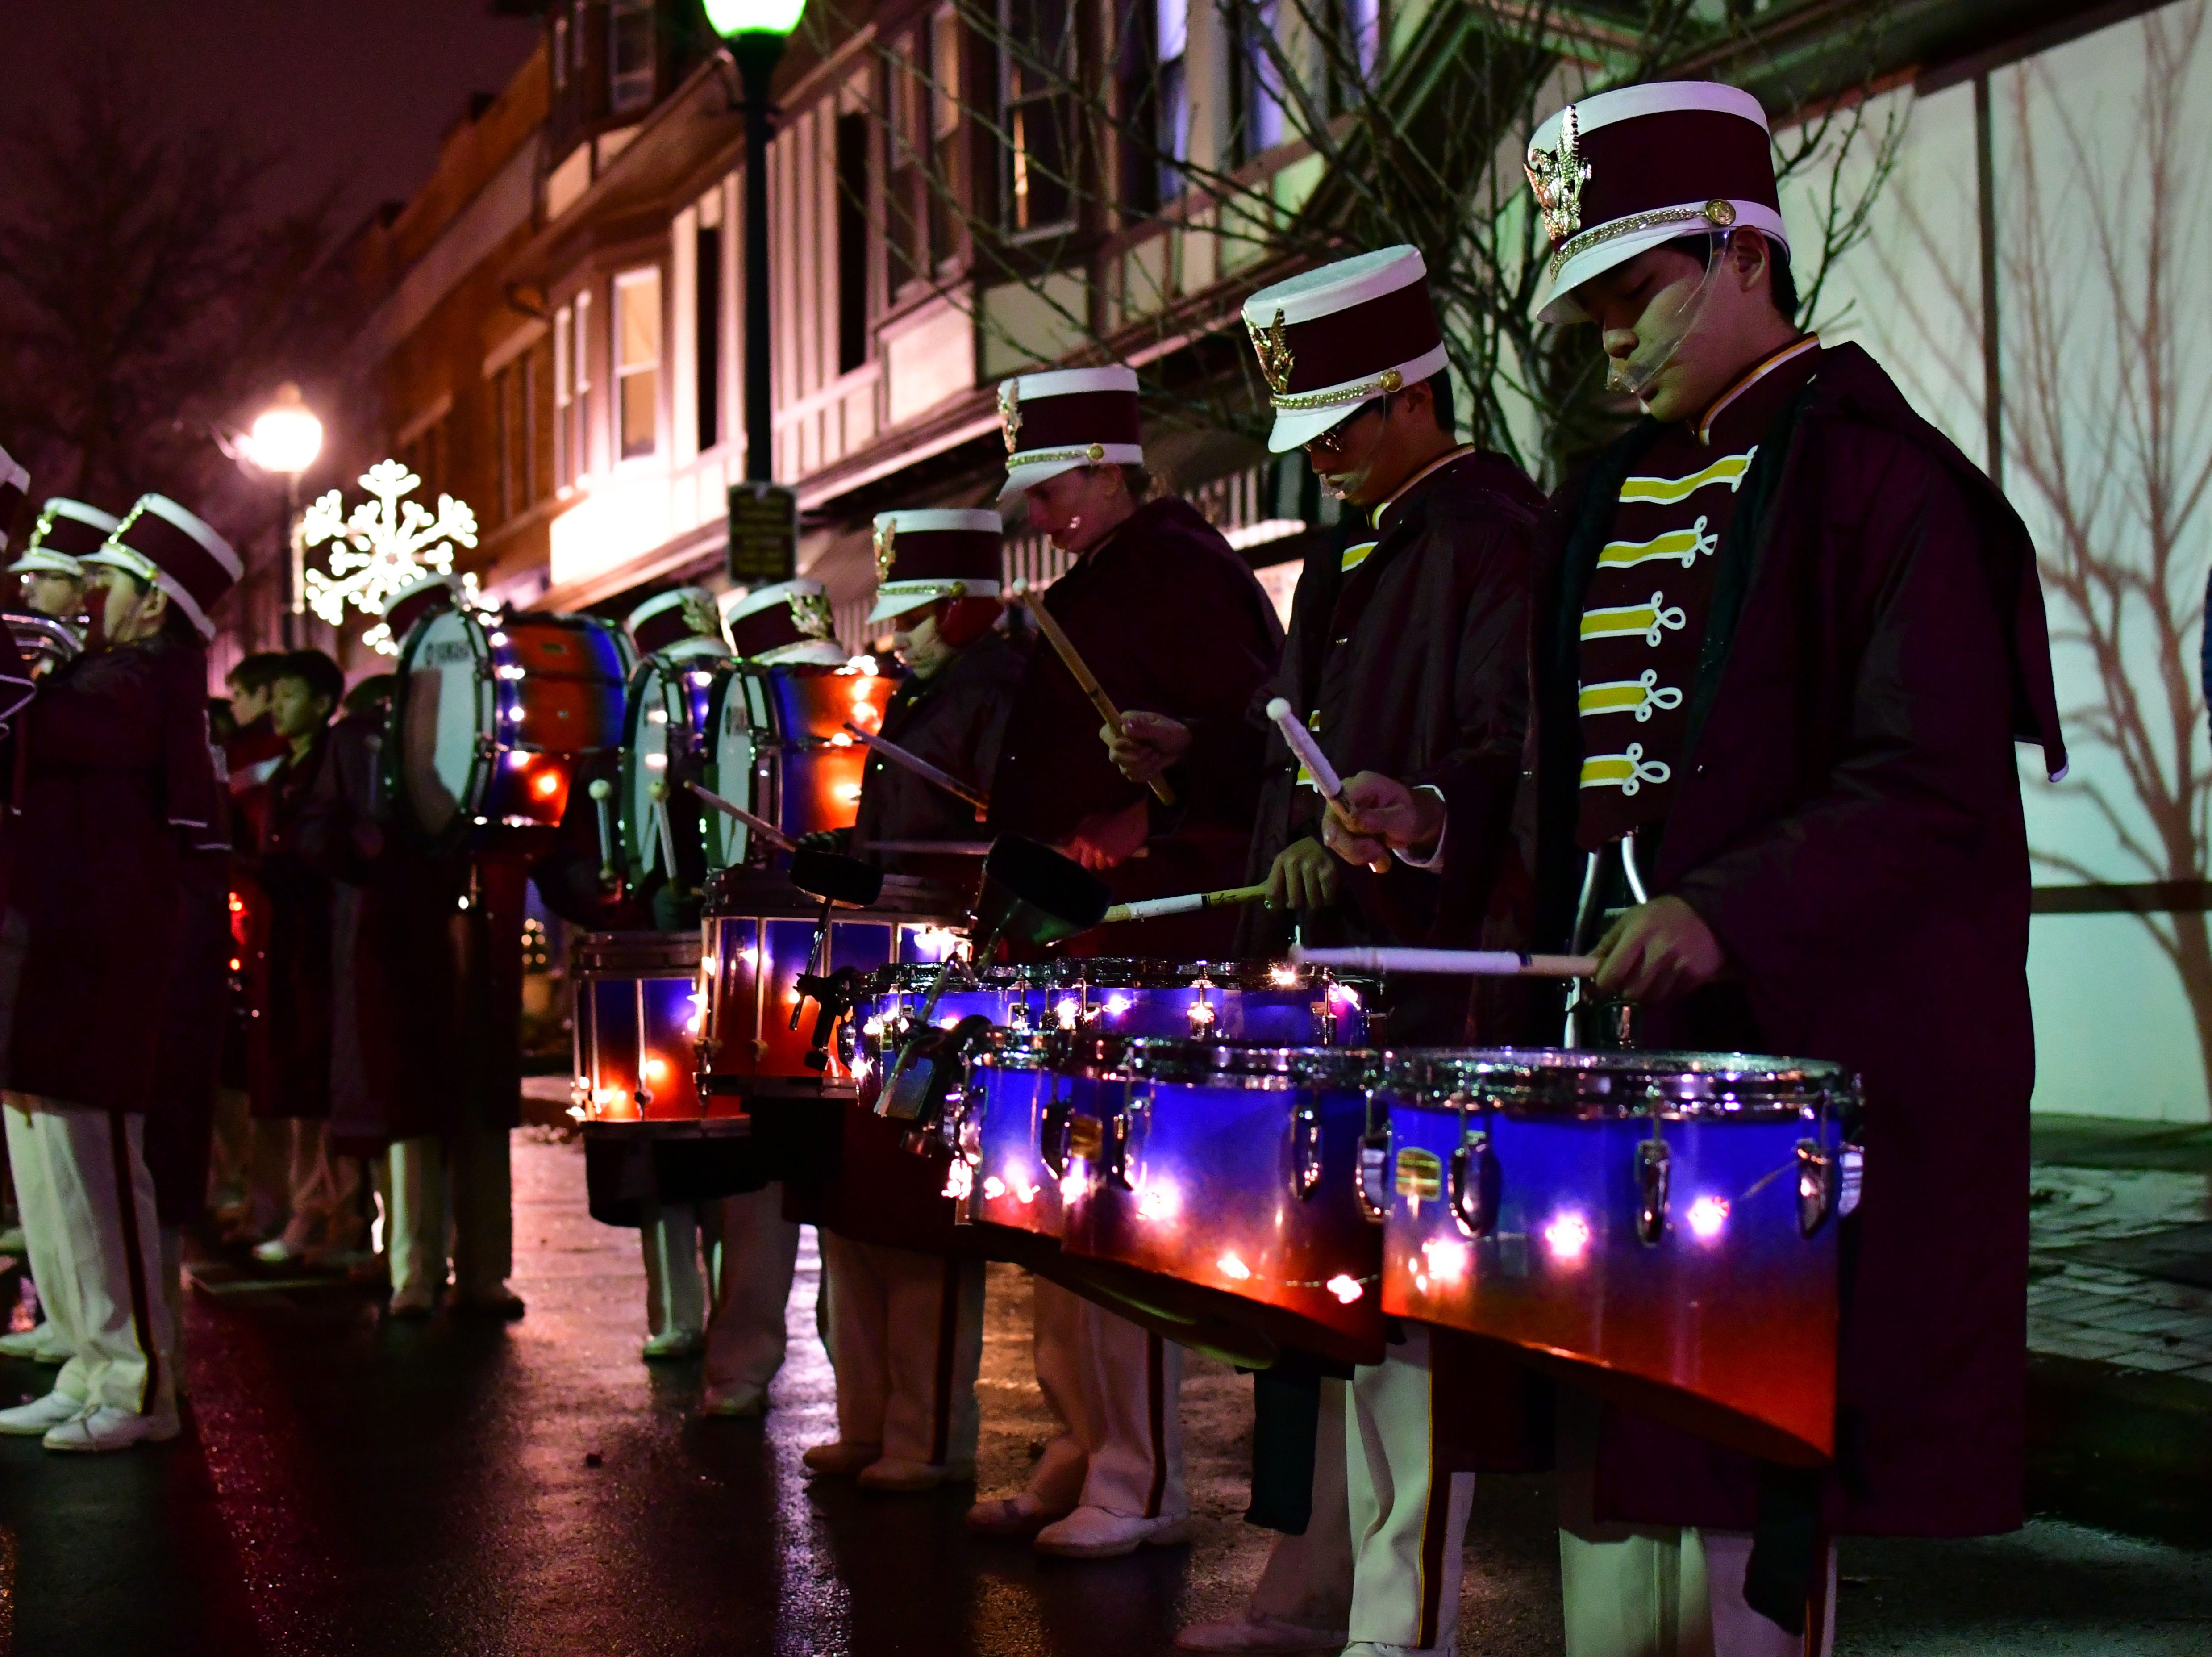 RHS marching band.  Holiday festivities along East Ridgewood Avenue in Ridgewood on Nov. 30.